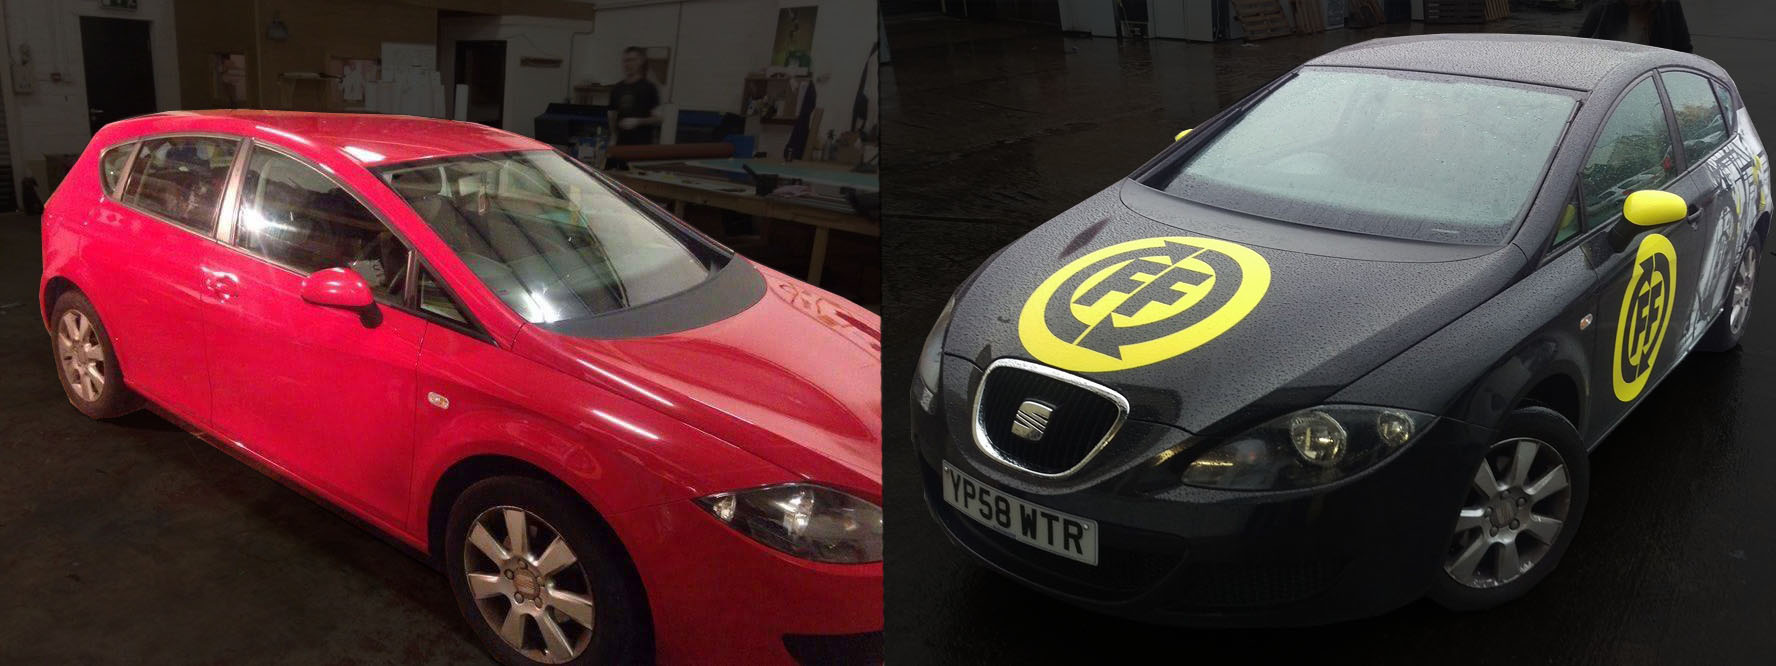 Seat Wrap - Before and after - FF-Fitness